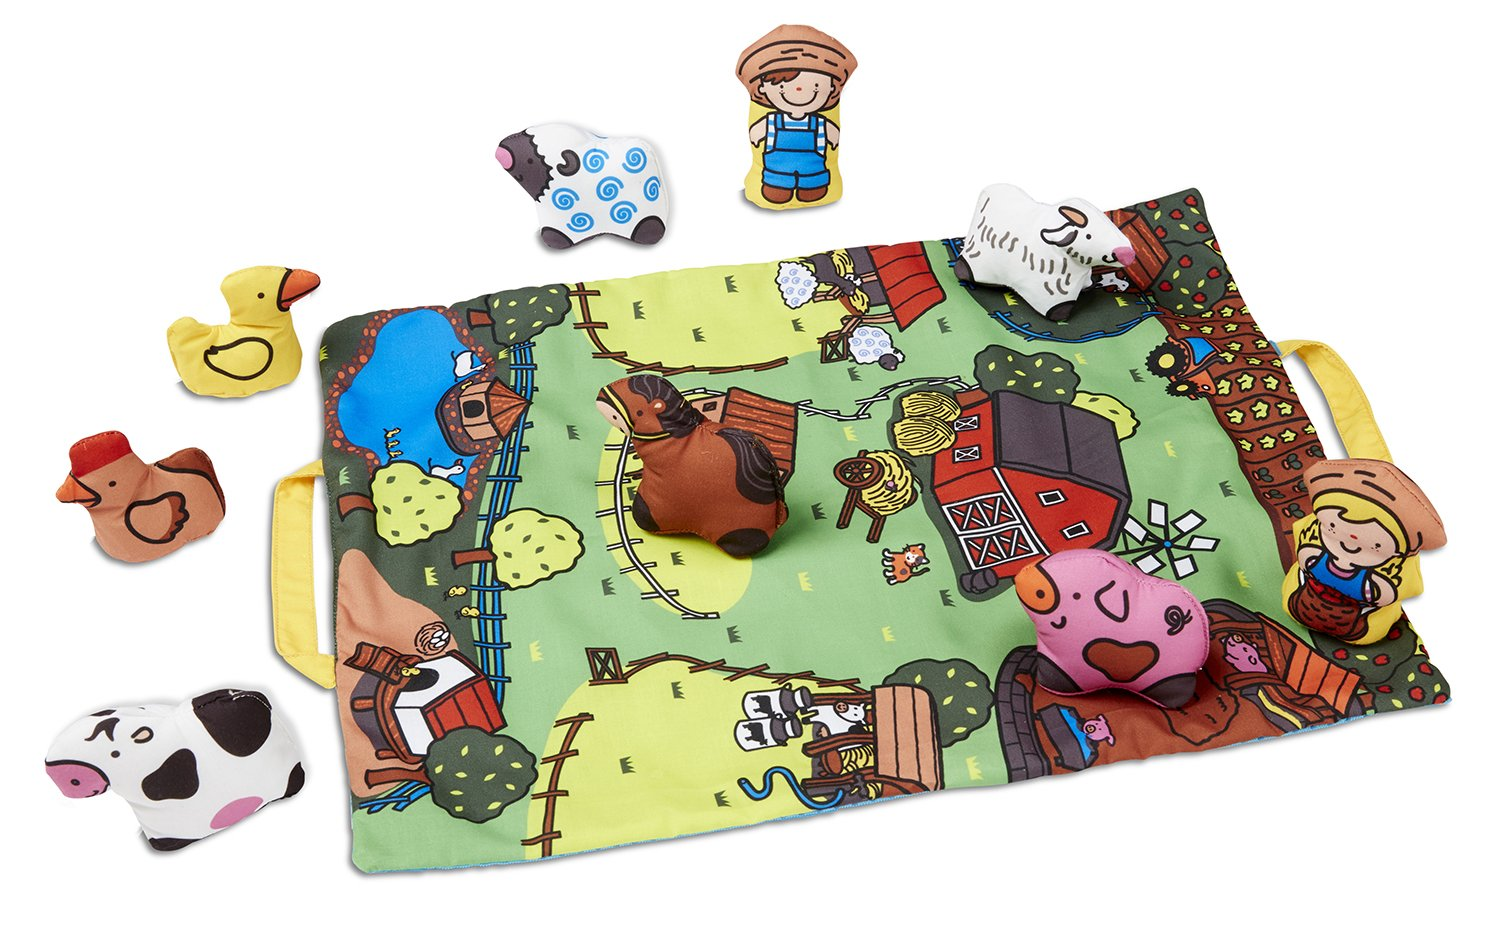 Melissa & Doug Take-Along Farm Baby and Toddler Play Mat (19.25 x 14.5 inches) With 9 Animals - Folds To Be Convenient Storage Bag for Travel Toy Melissa and Doug 9216